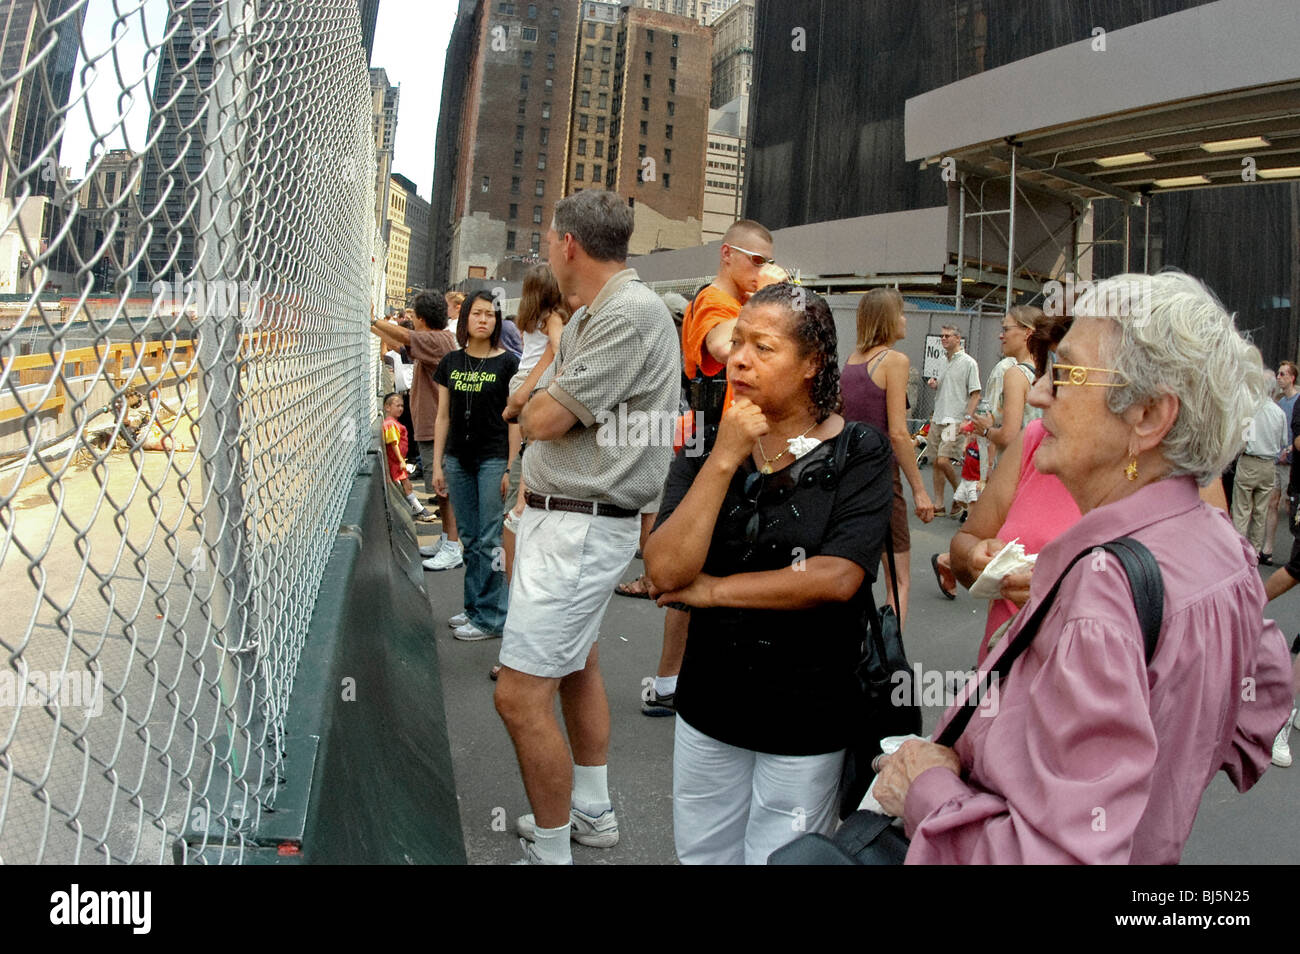 Group Tourists, Looking, in mourning, at 9/11 Ground Zero Site, New York. - Stock Image